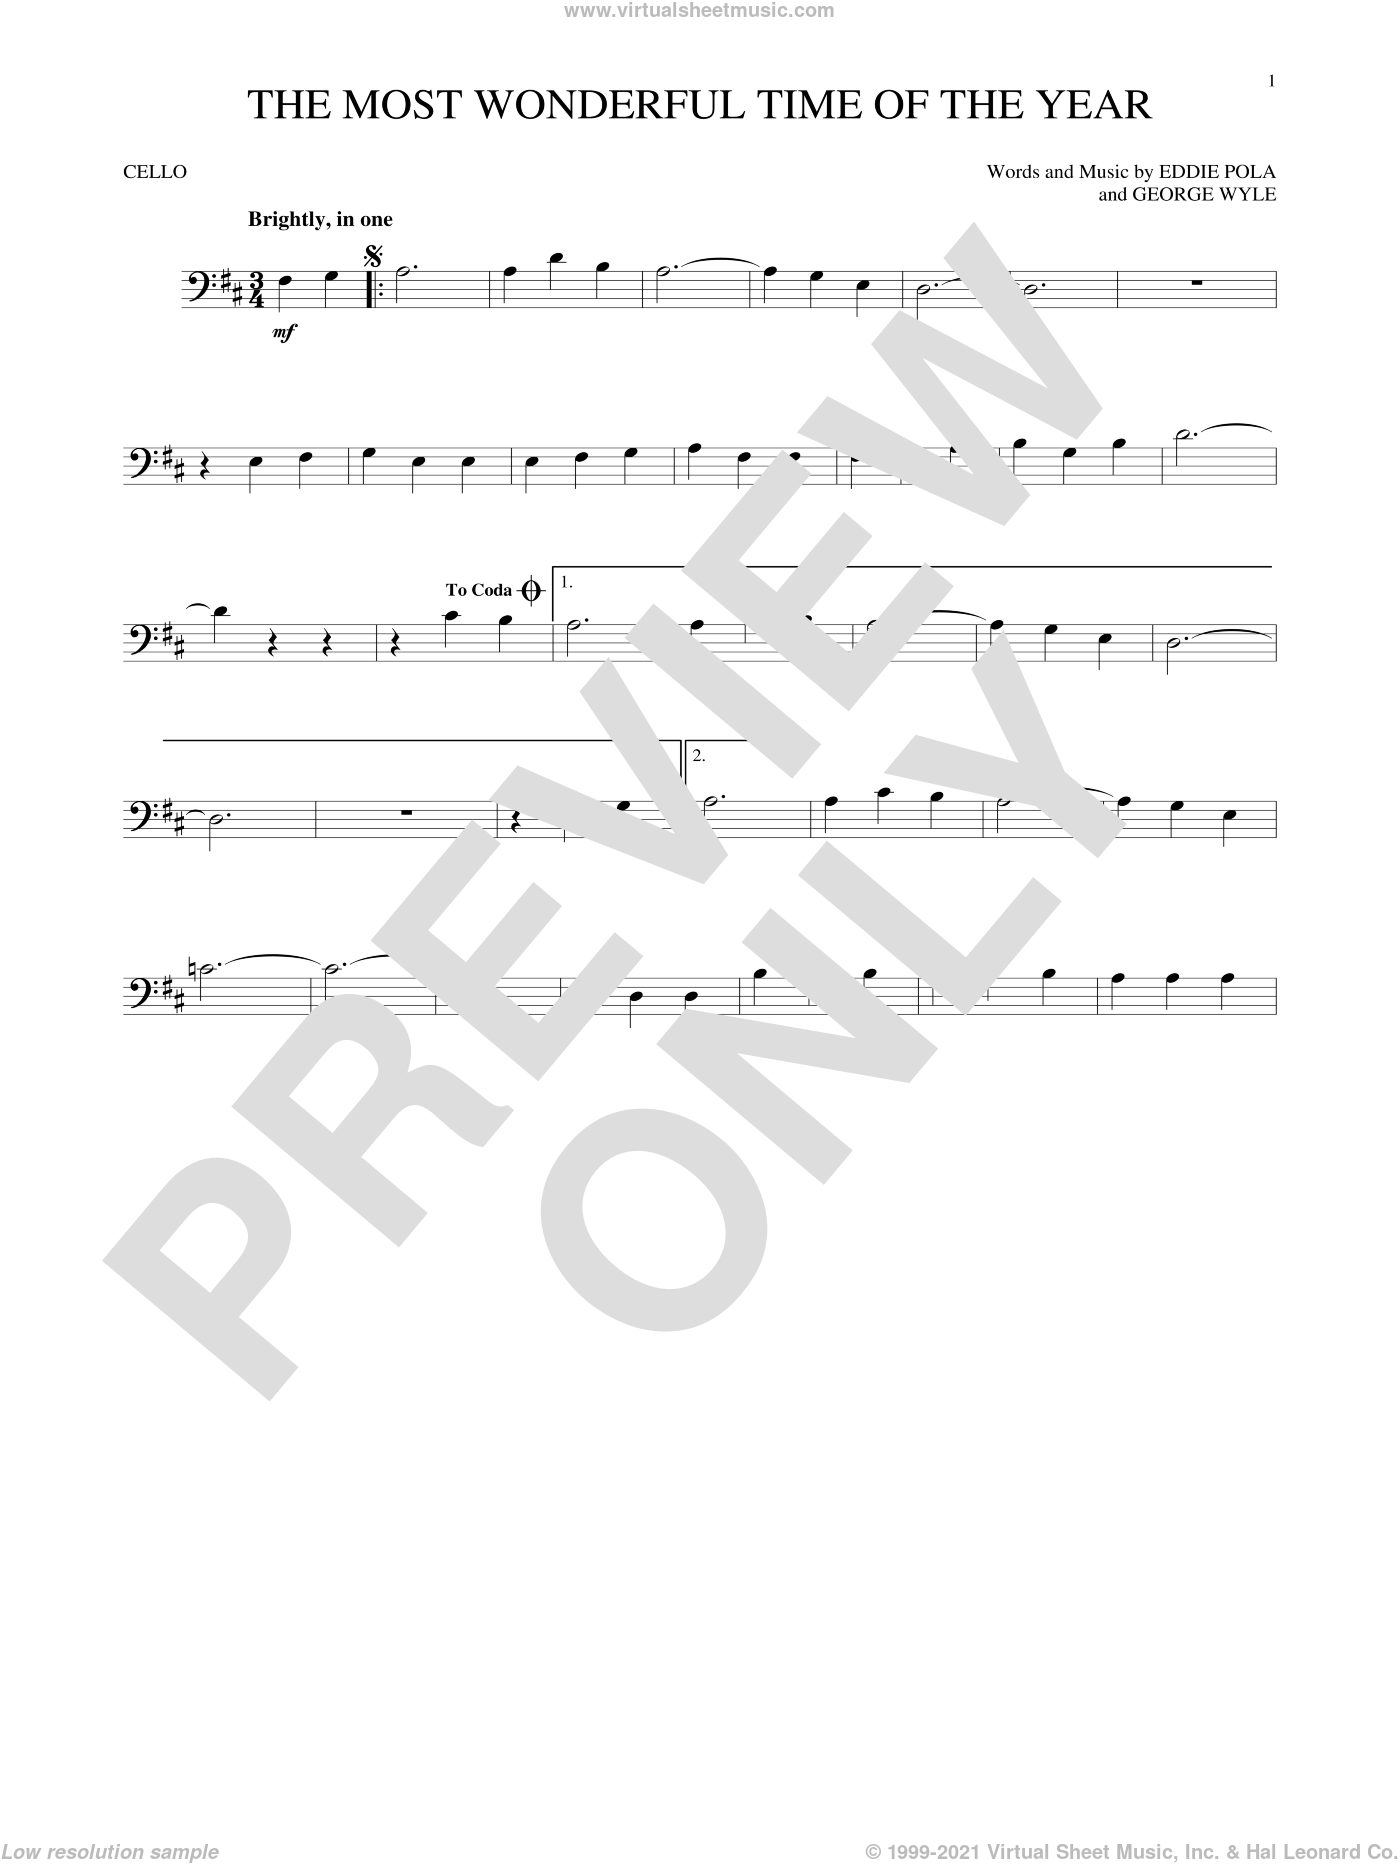 The Most Wonderful Time Of The Year sheet music for cello solo by George Wyle, Andy Williams, Eddie Pola and George Wyle & Eddie Pola, intermediate skill level